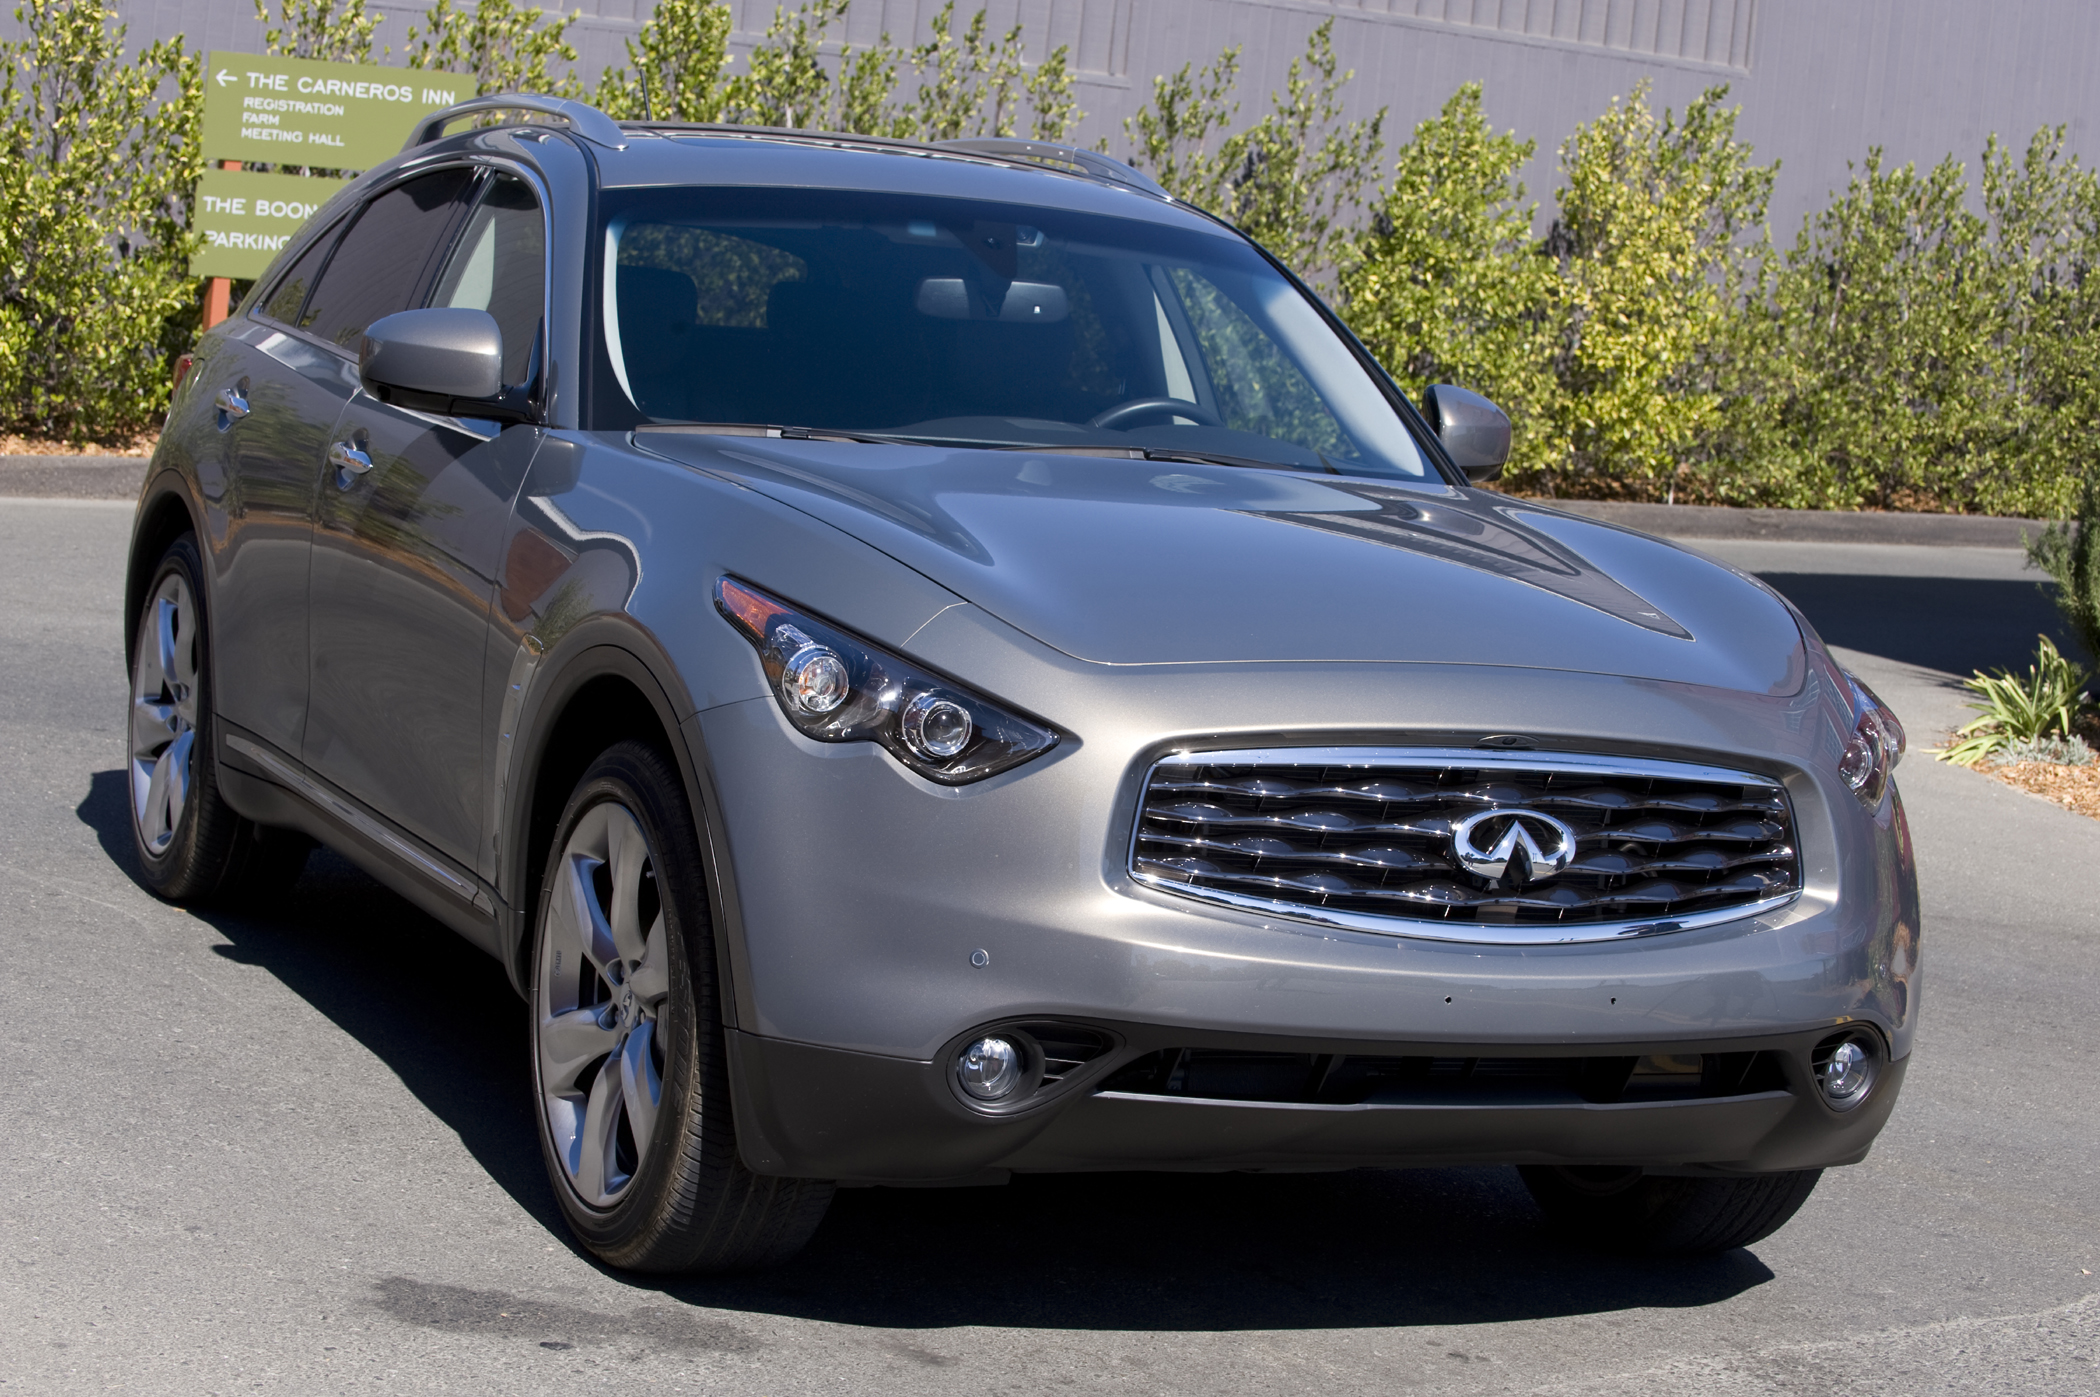 2009 infiniti fx50 a technical and performance statement new the fx50s techy but weird visual cues would serve harrison ford in blade runner but turn your head the right way place it in an epoch before the age of vanachro Image collections